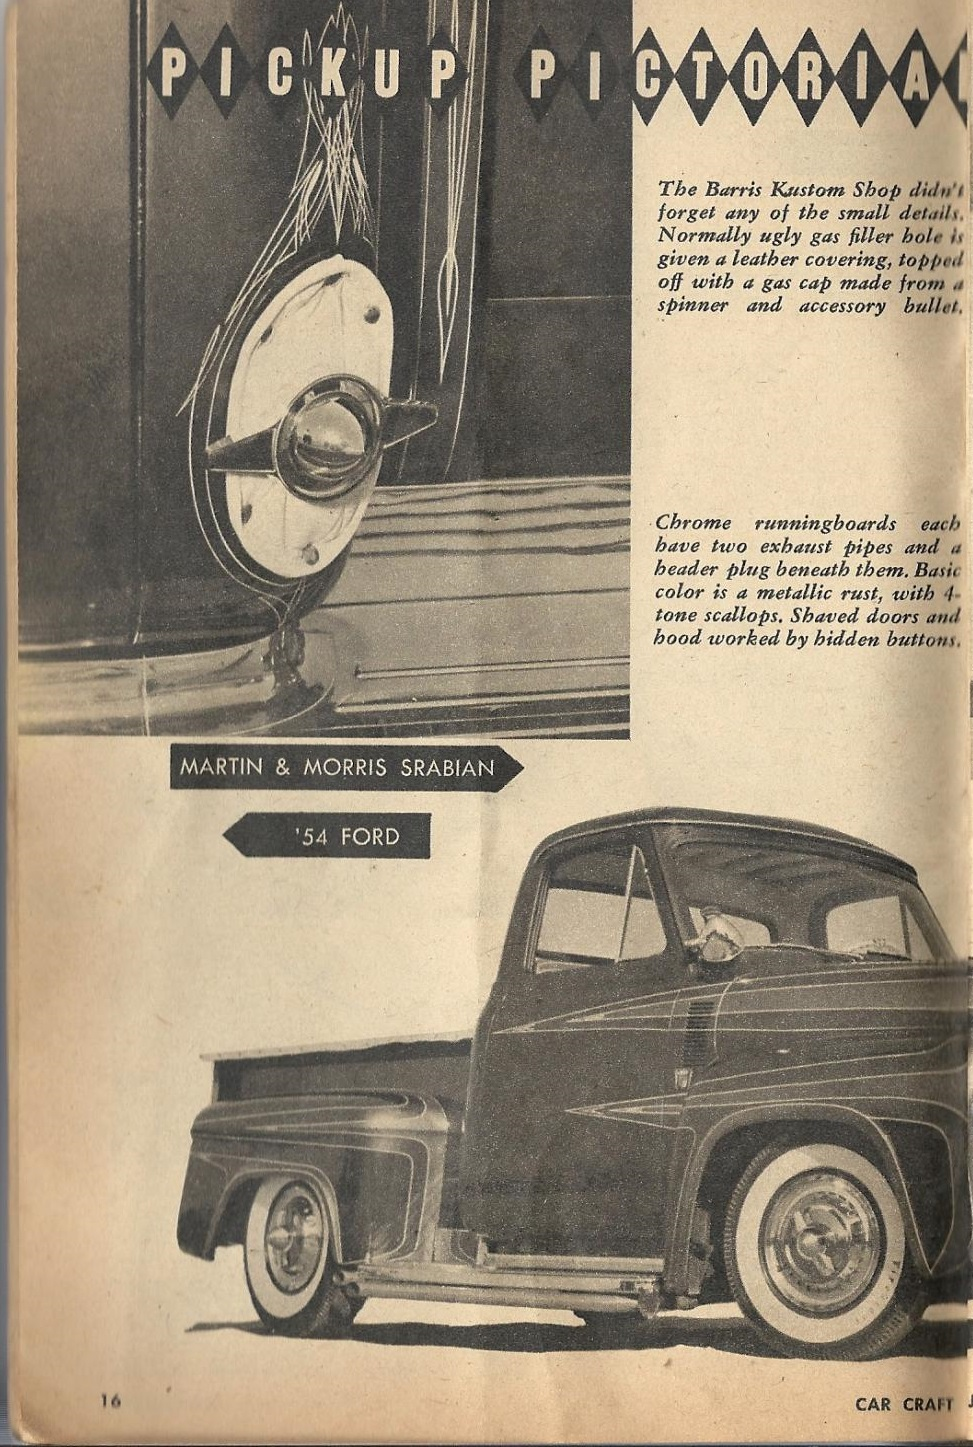 Car Craft - Special Pick Up June 1959 - Pick up Pictorial 1624